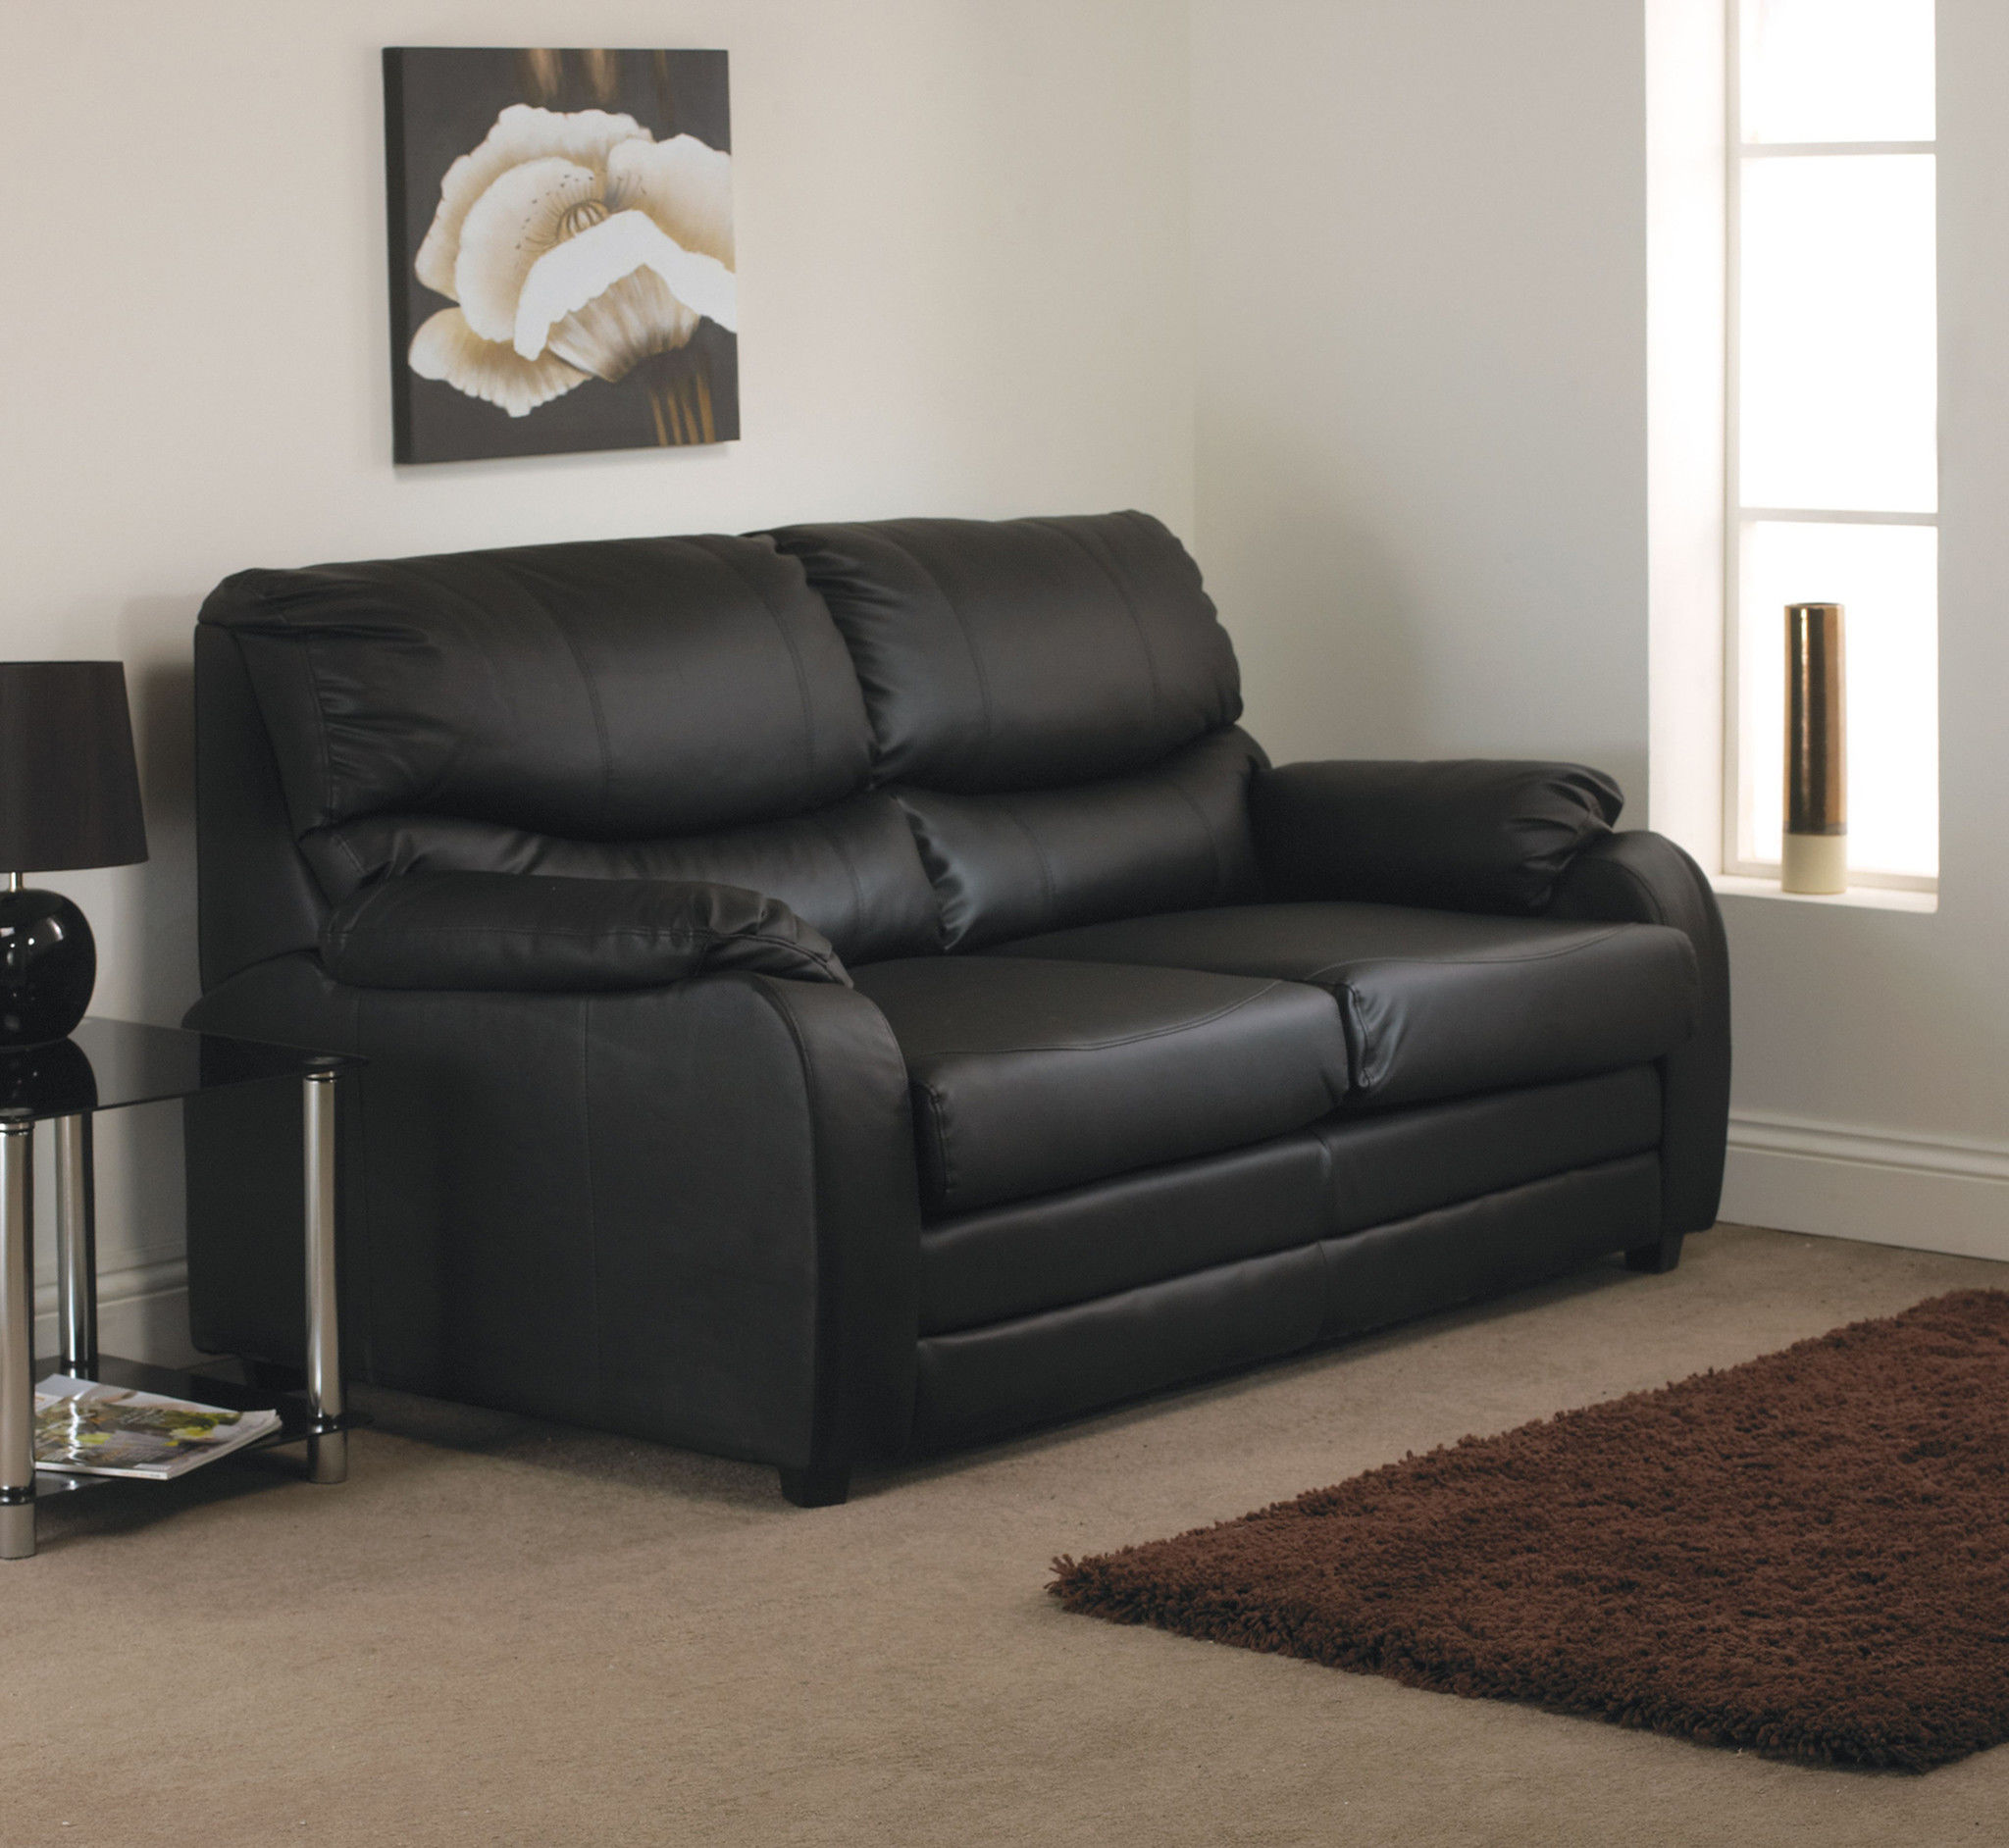 new black sofa set decoration-Cute Black sofa Set Ideas